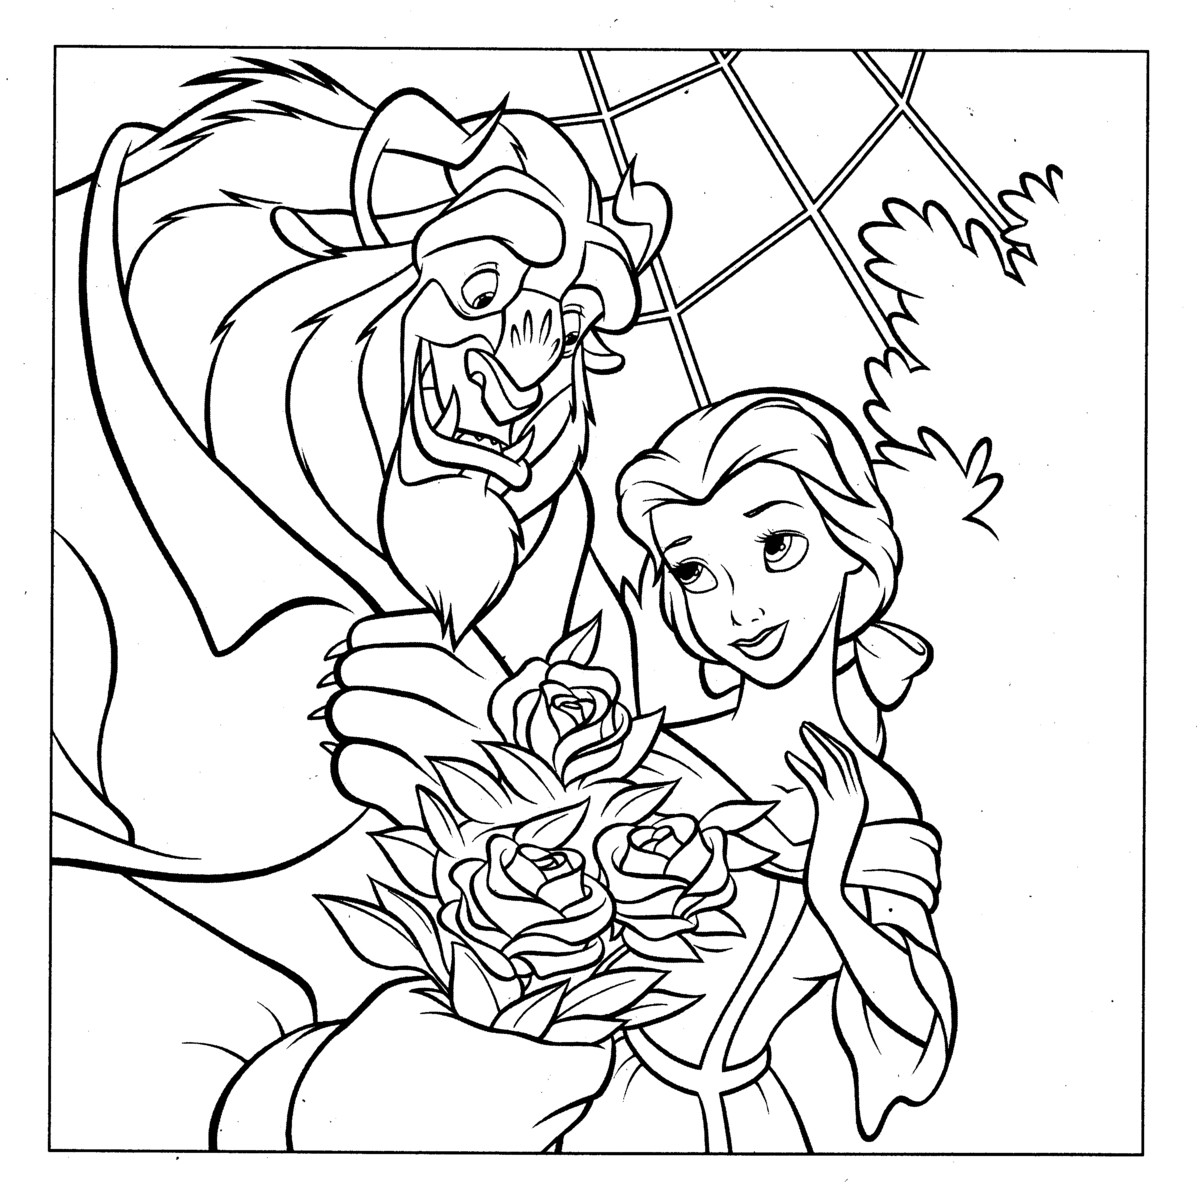 Princess Belle and the beast Free Printable Coloring Pages